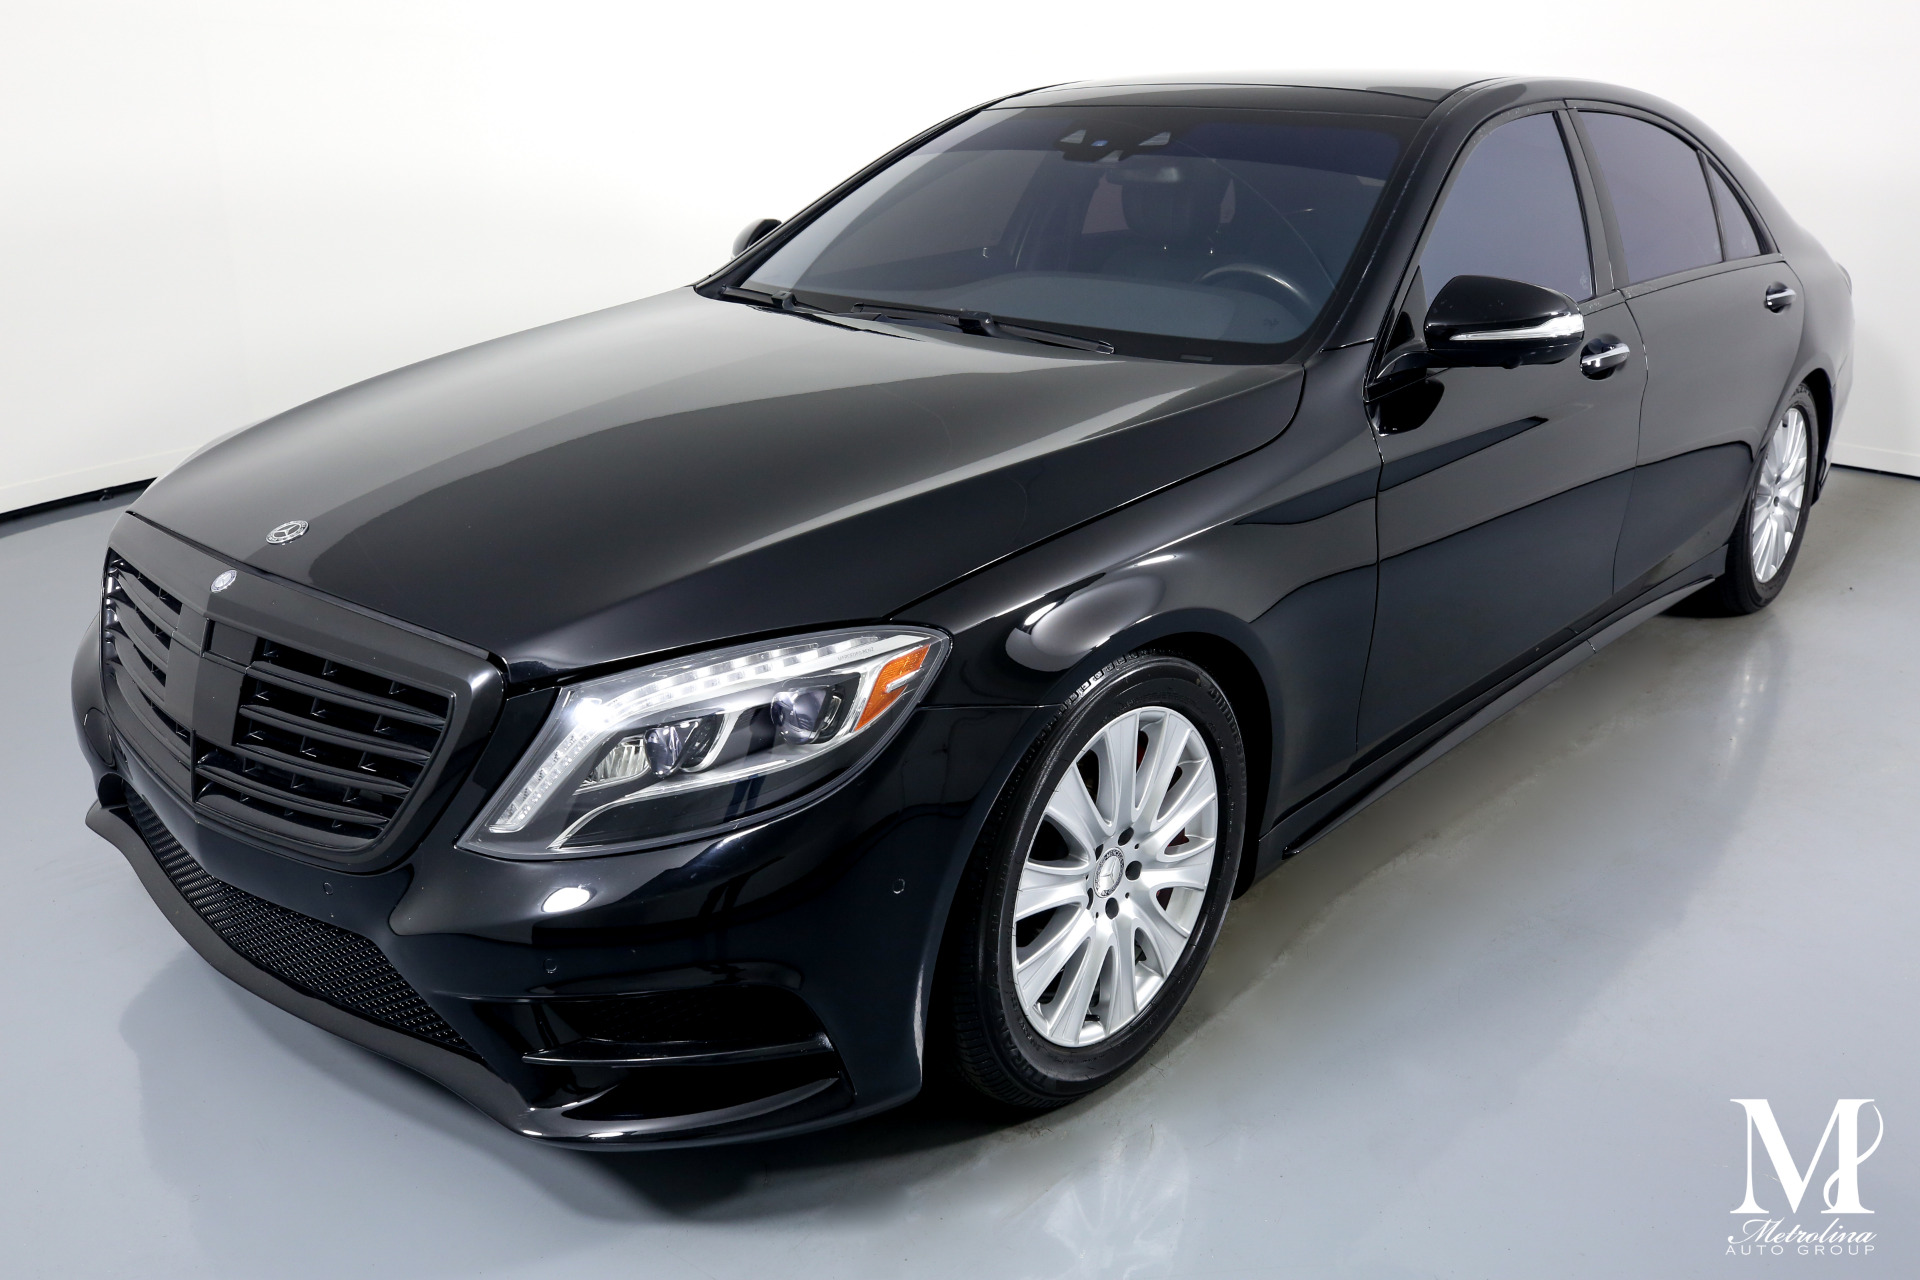 Used 2017 Mercedes-Benz S-Class S 550 for sale Sold at Metrolina Auto Group in Charlotte NC 28217 - 4